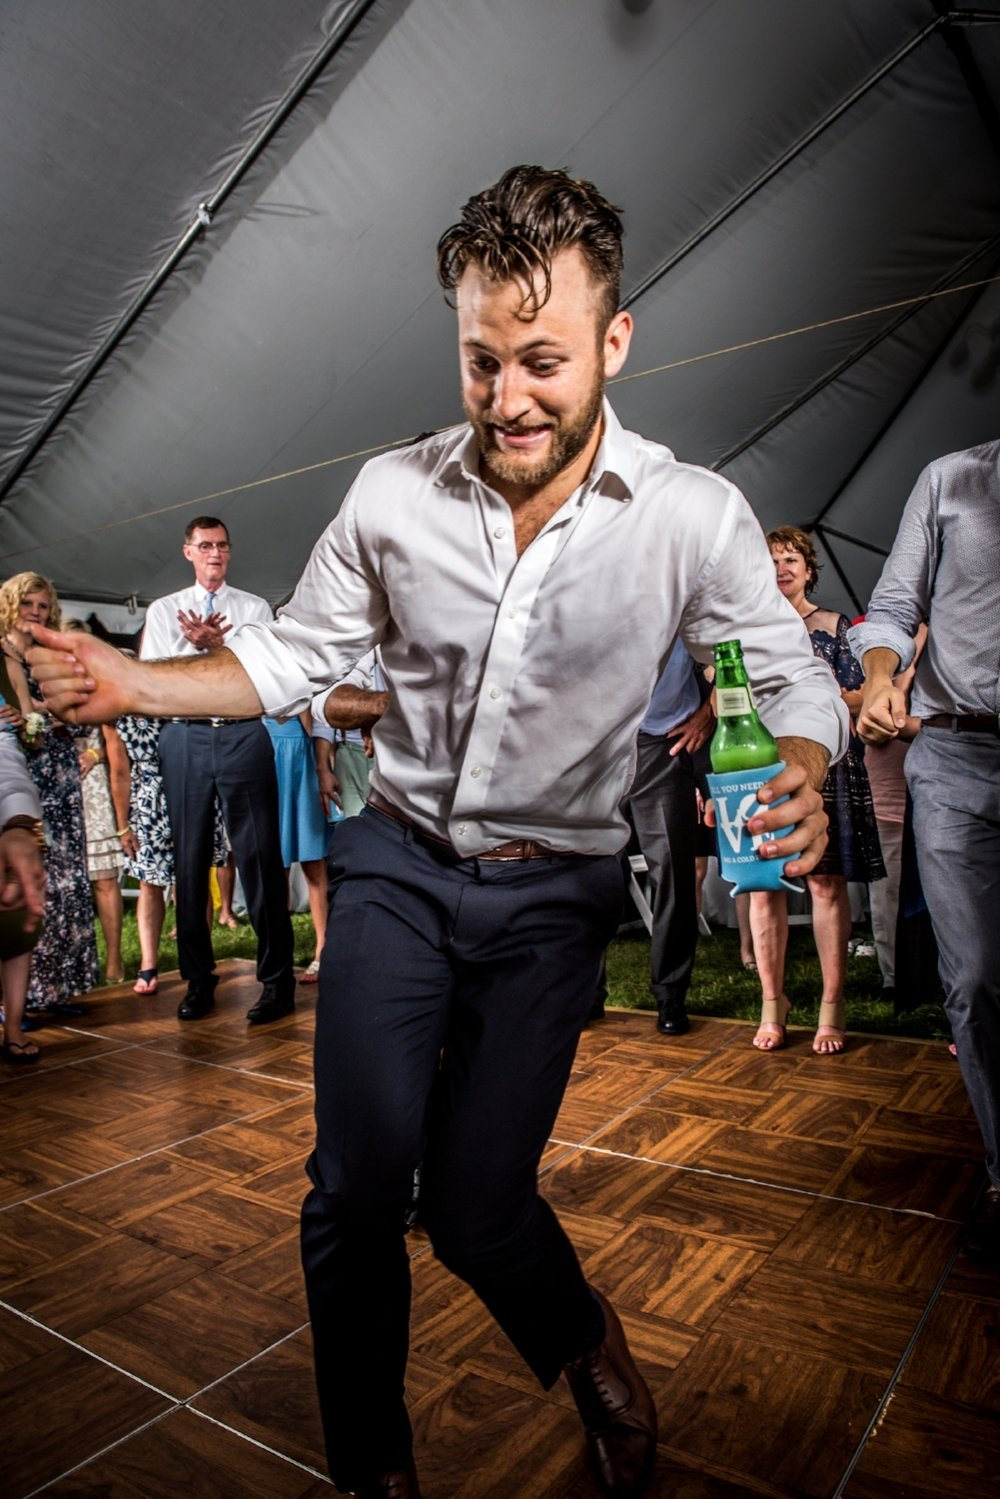 groomsmen-dancing-at-wedding-reception